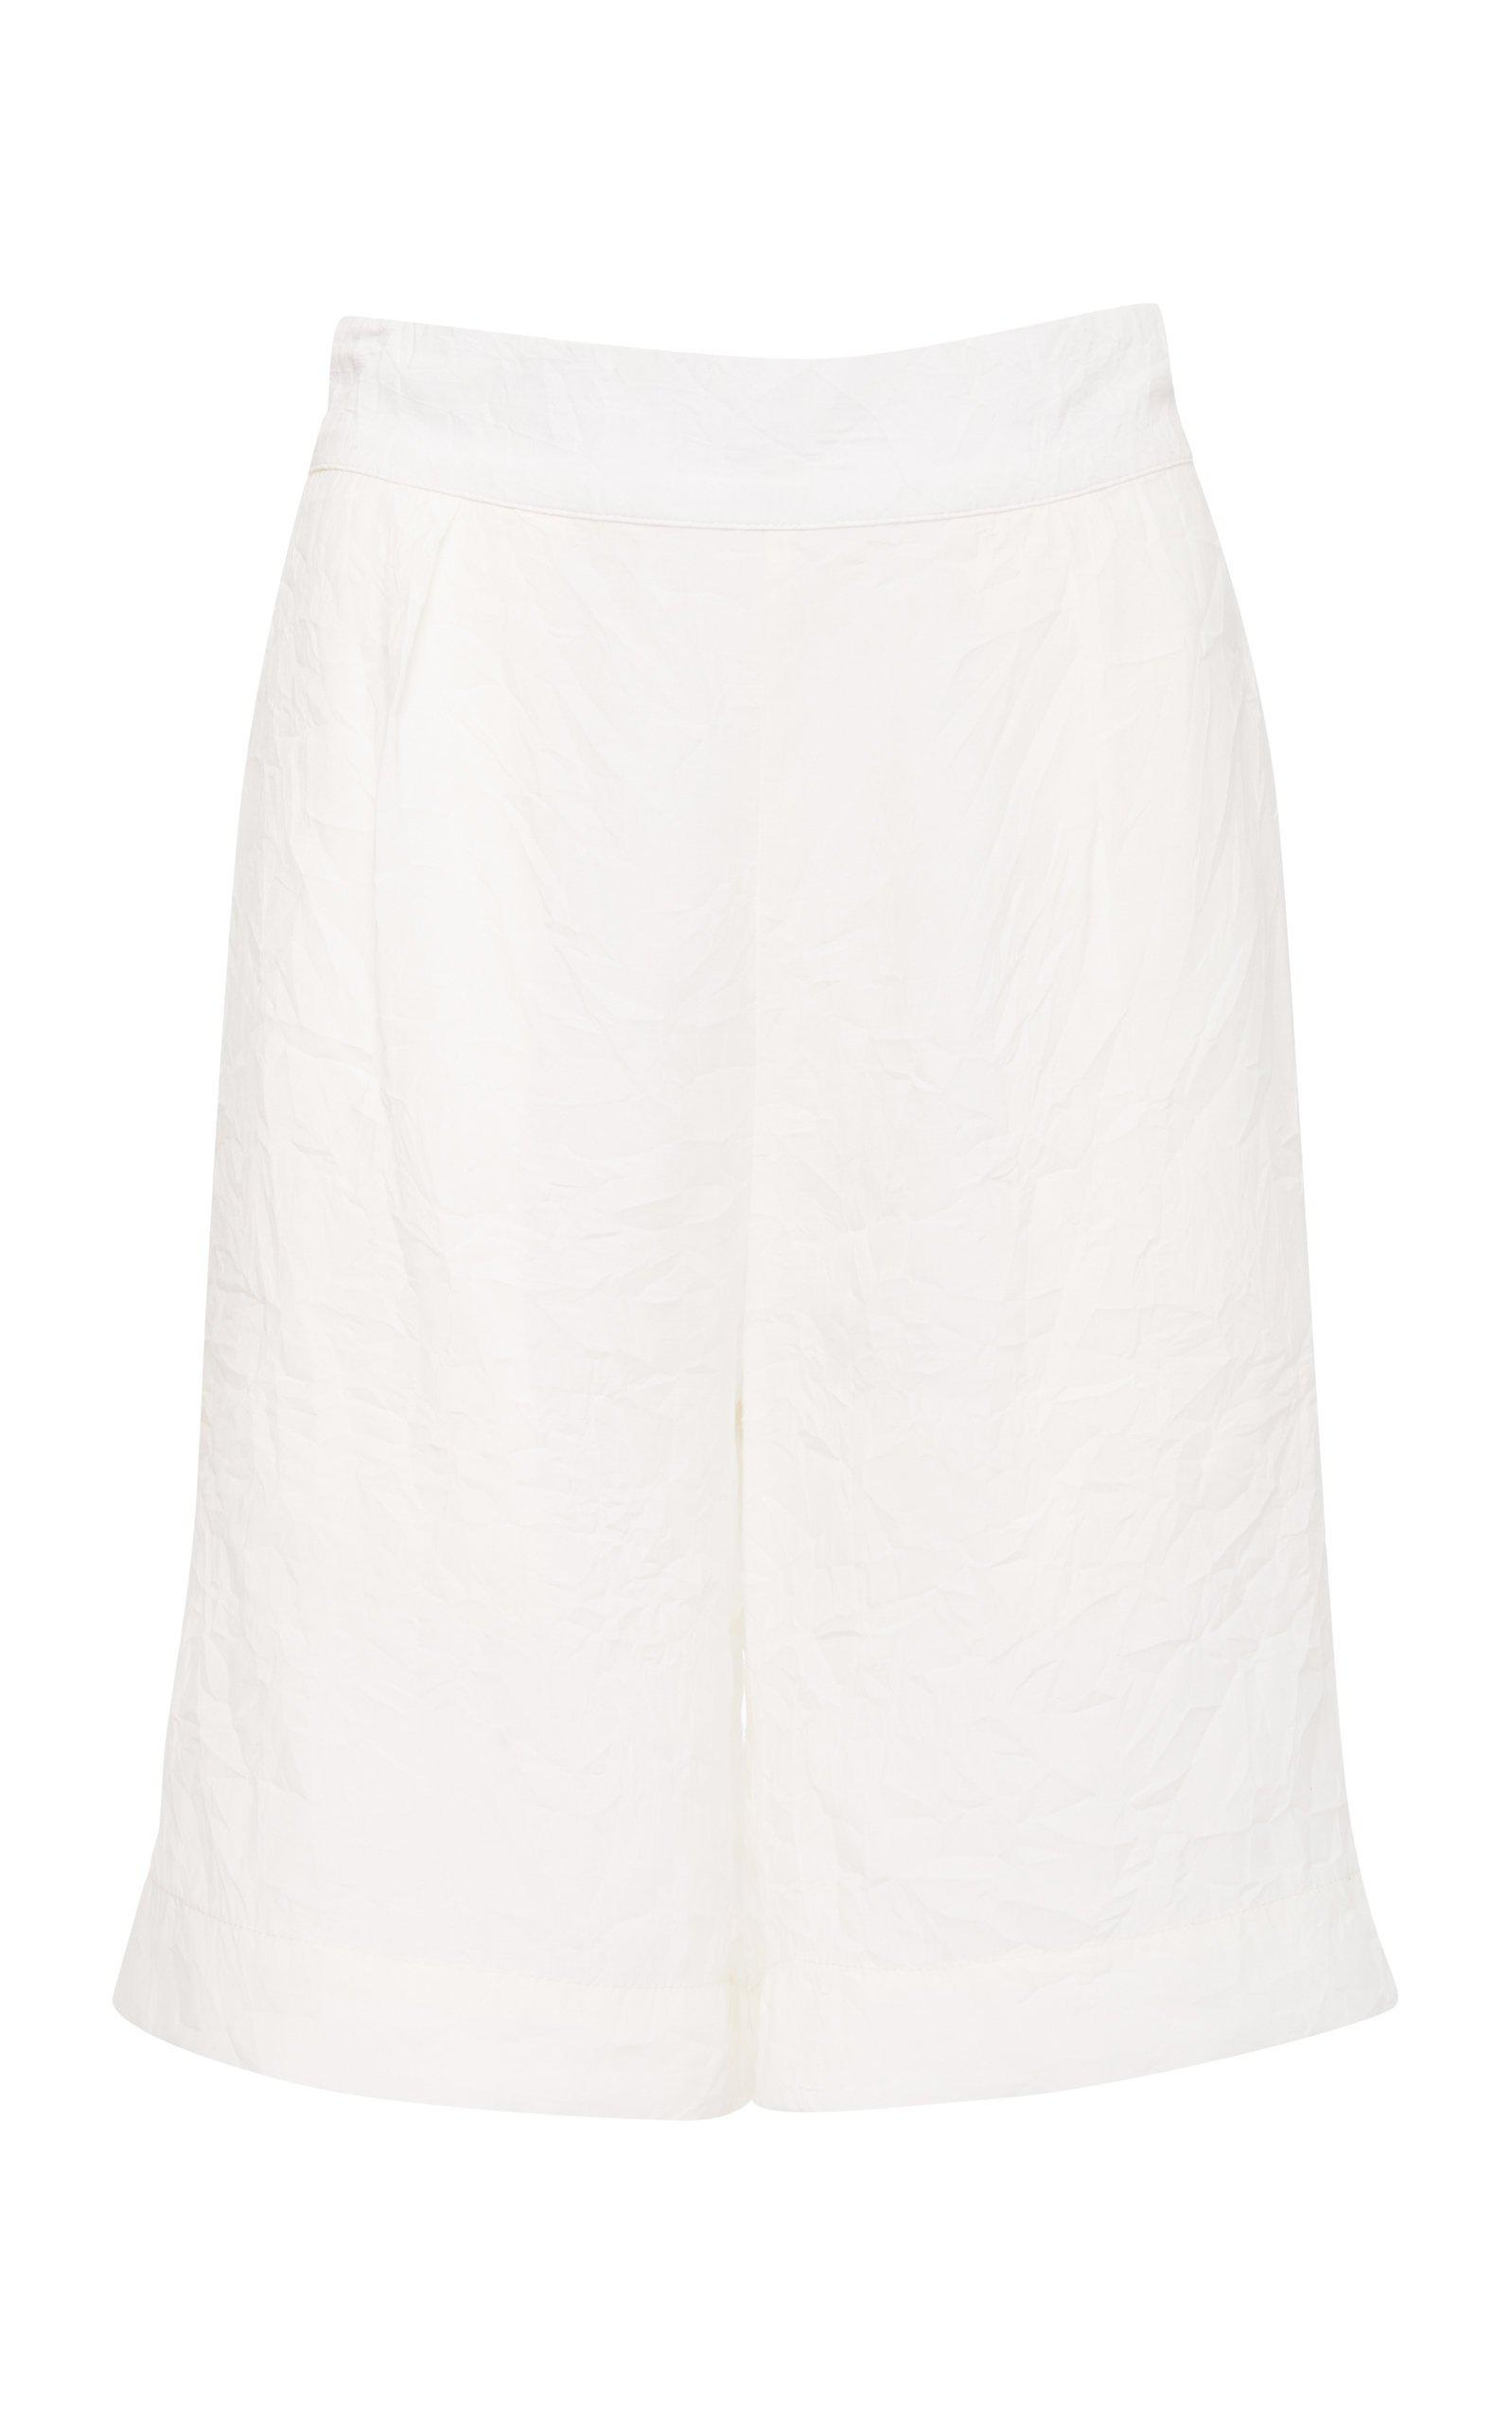 The High-Waisted Boardshort in Sheer Ramie